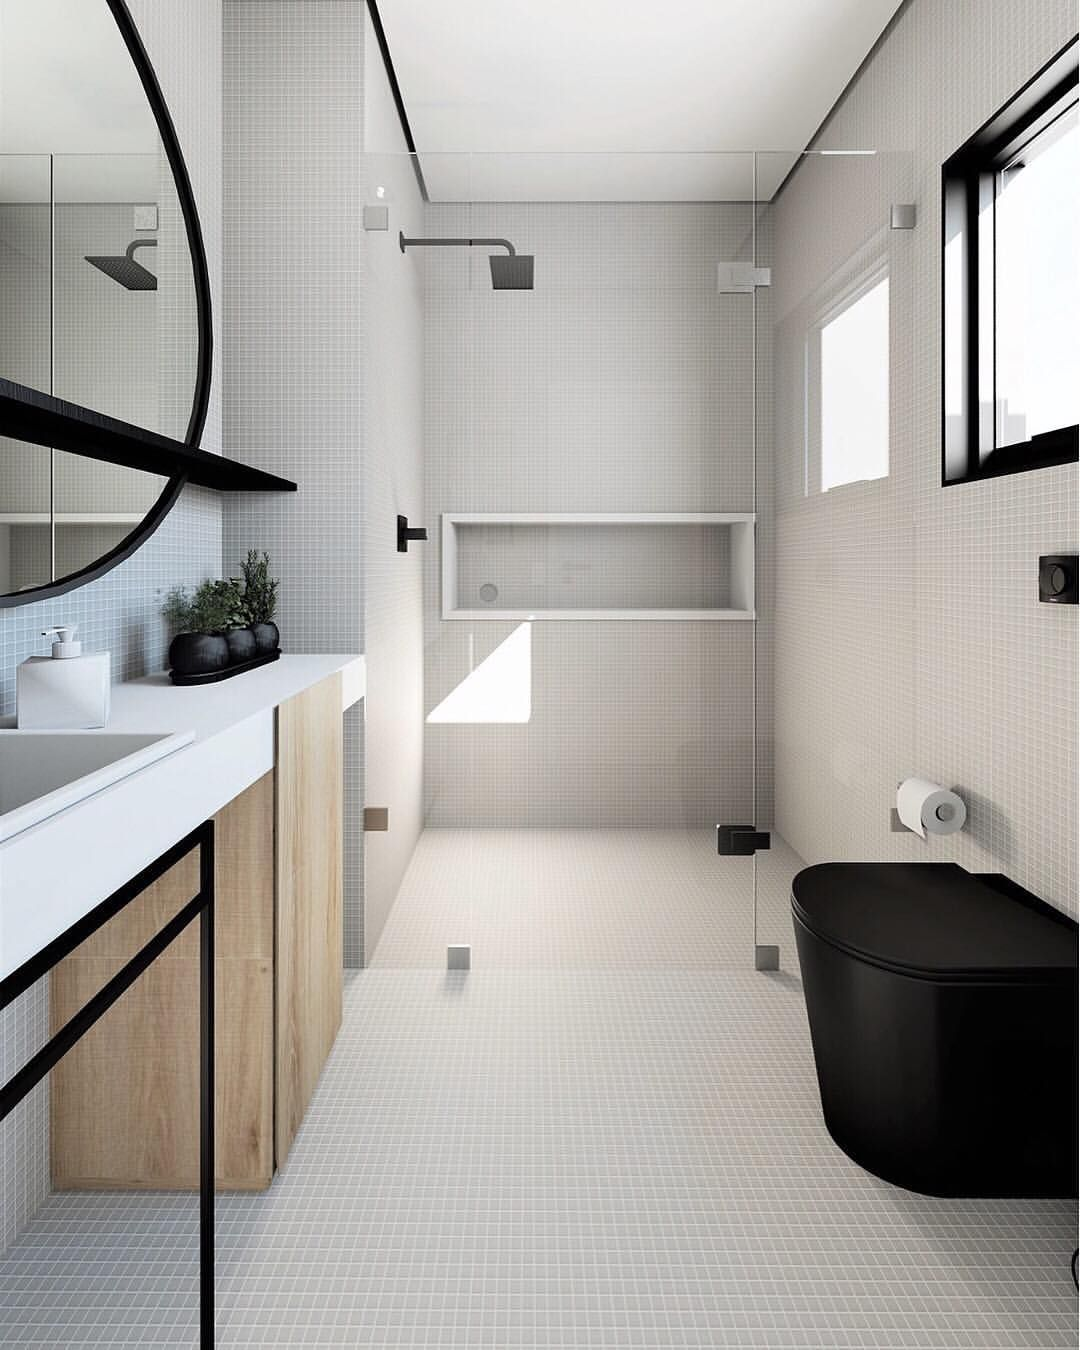 In Case You Forgot To Swipe Left From Our Previous Post Because We Were Actually Testing You Black Tile Bathrooms Modern Interior Design Amazing Bathrooms Amazing concept modern bathroom